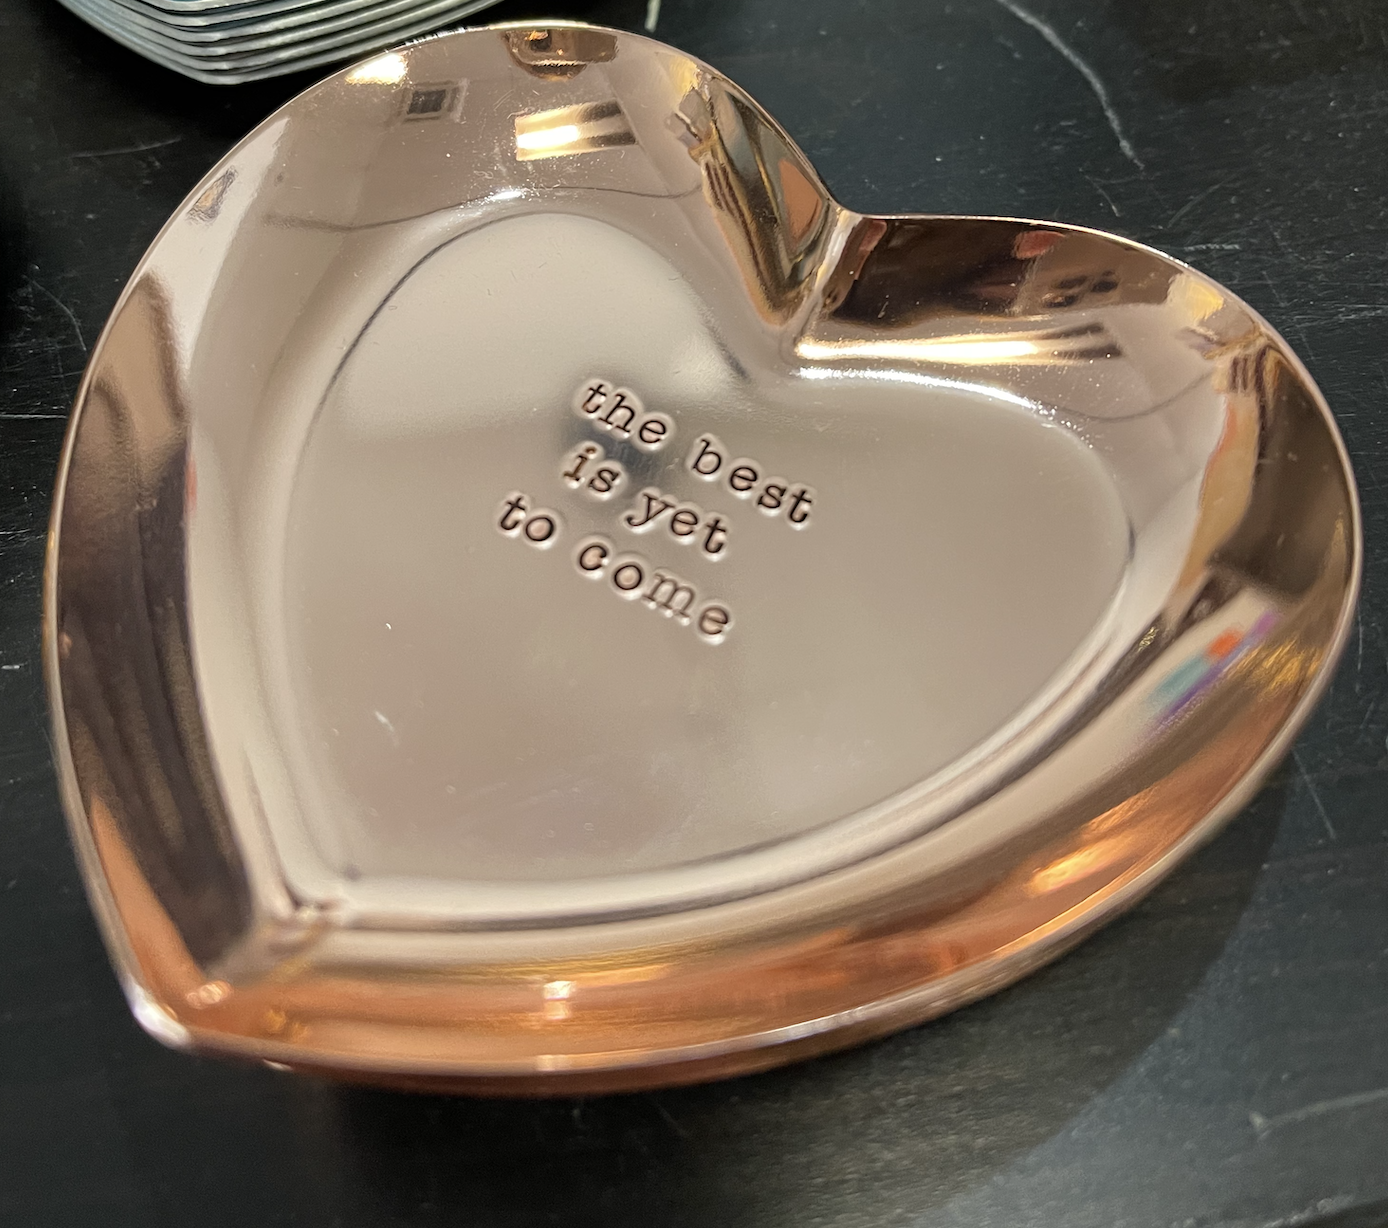 Rockaway Gypsea Rose Gold Heart Ring Dish